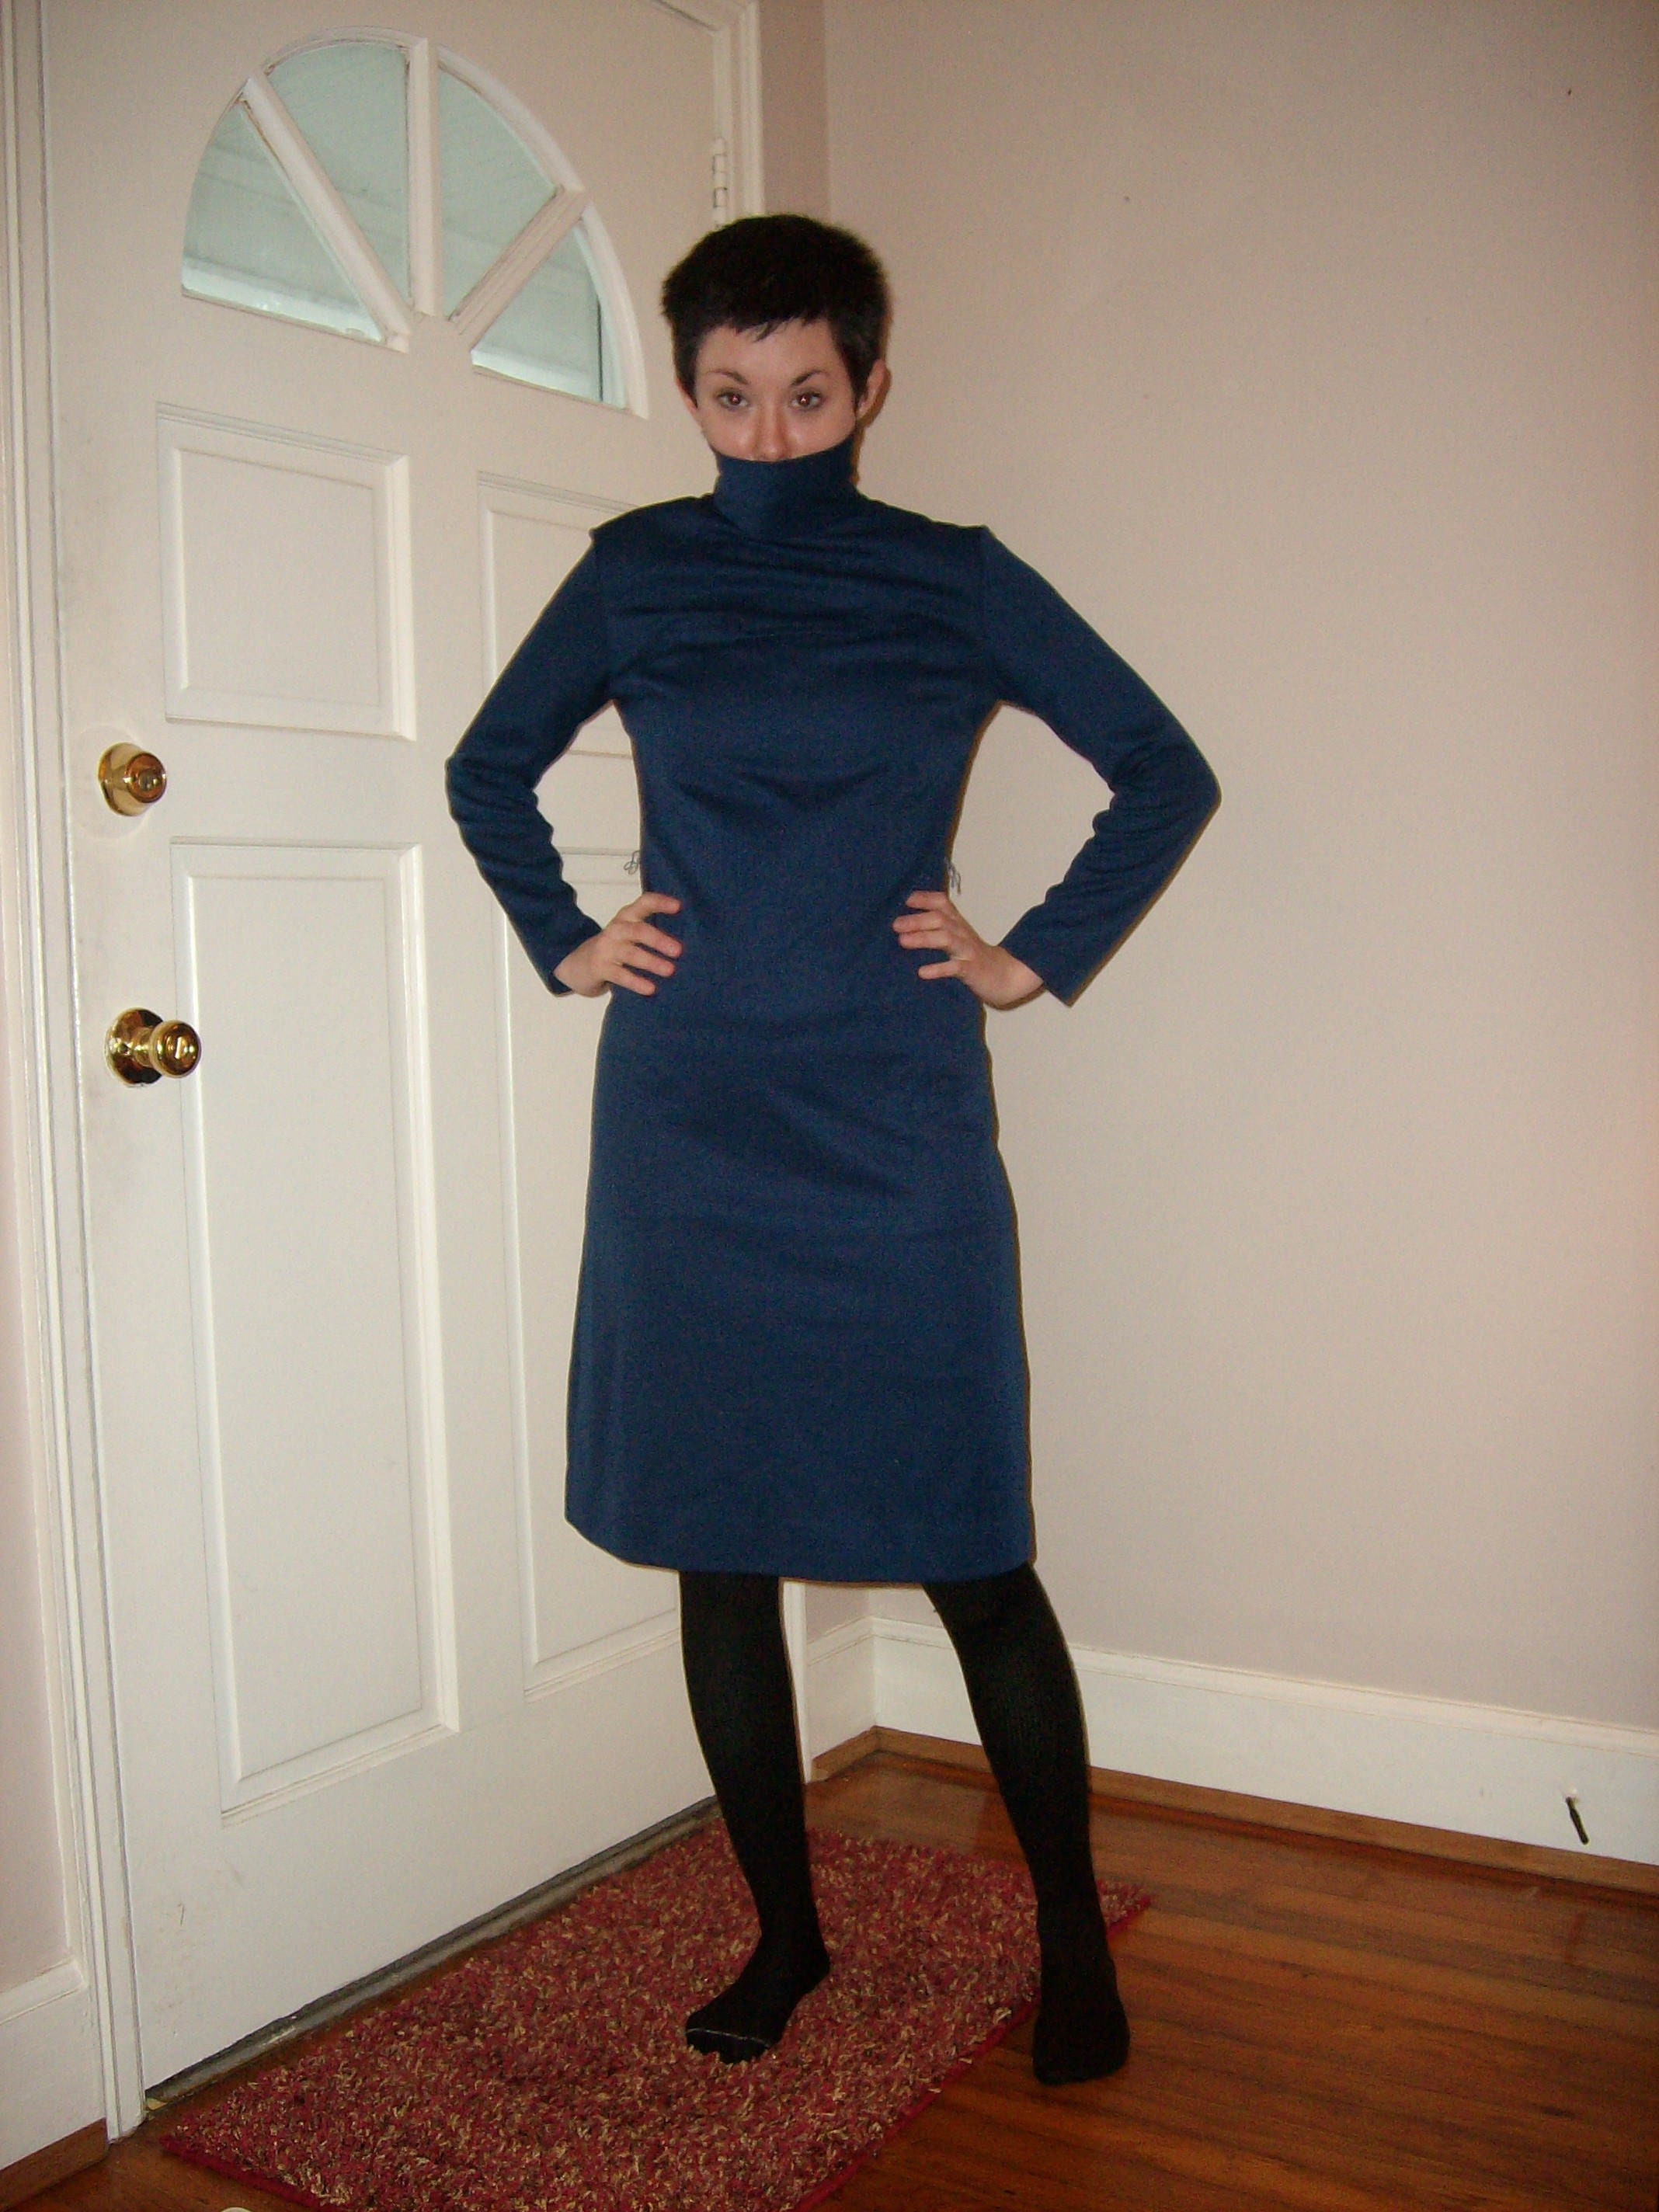 She Wore Blue Polyester... 2